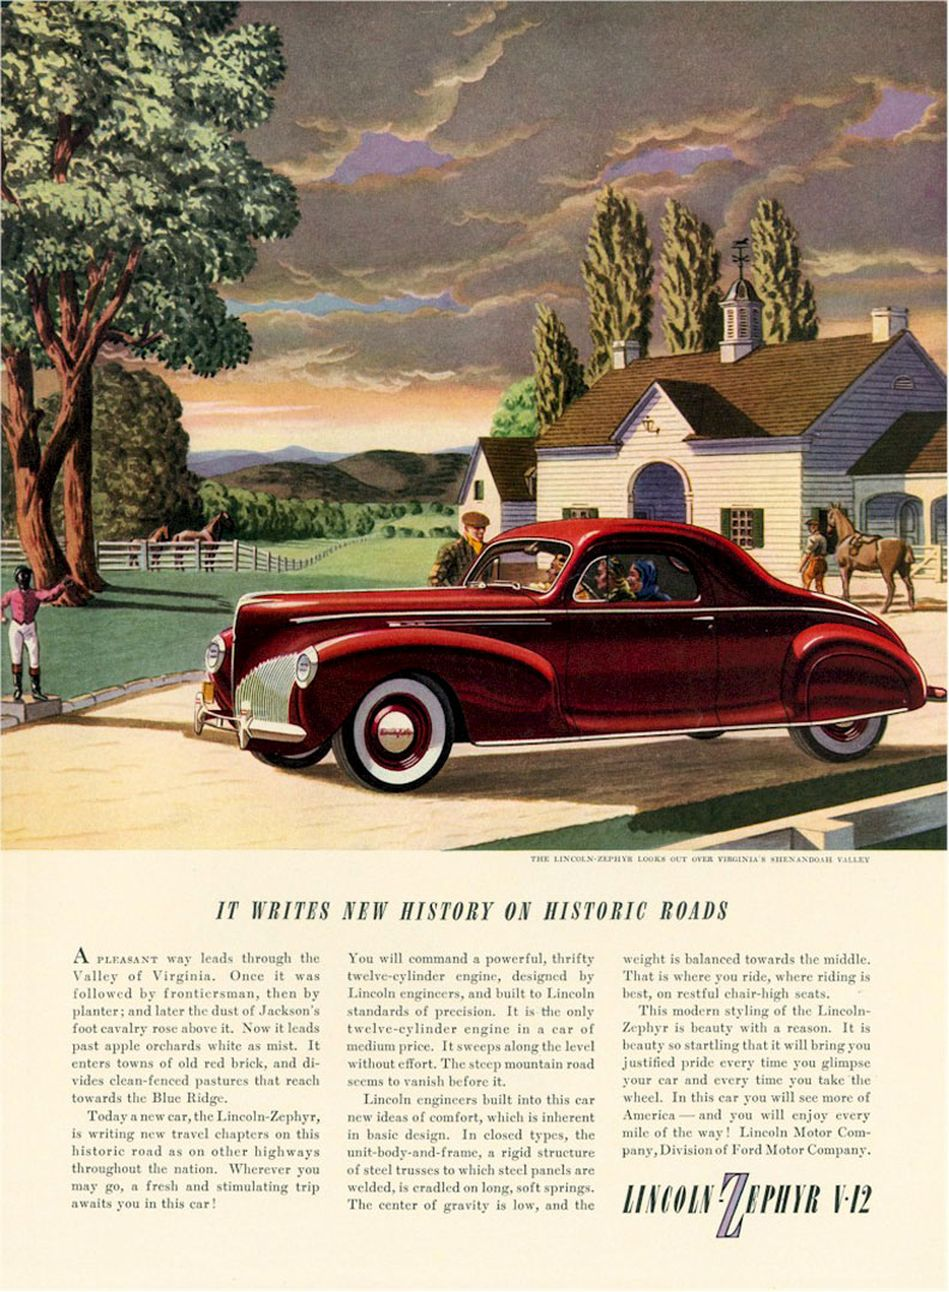 """automobile ads then and now As bob dylan once famously penned, """"the times, they are a-changin'"""" gone are the days when milk was delivered to your doorstep, movie tickets cost $1, and you could fill up your car with the change in your pocketbook."""